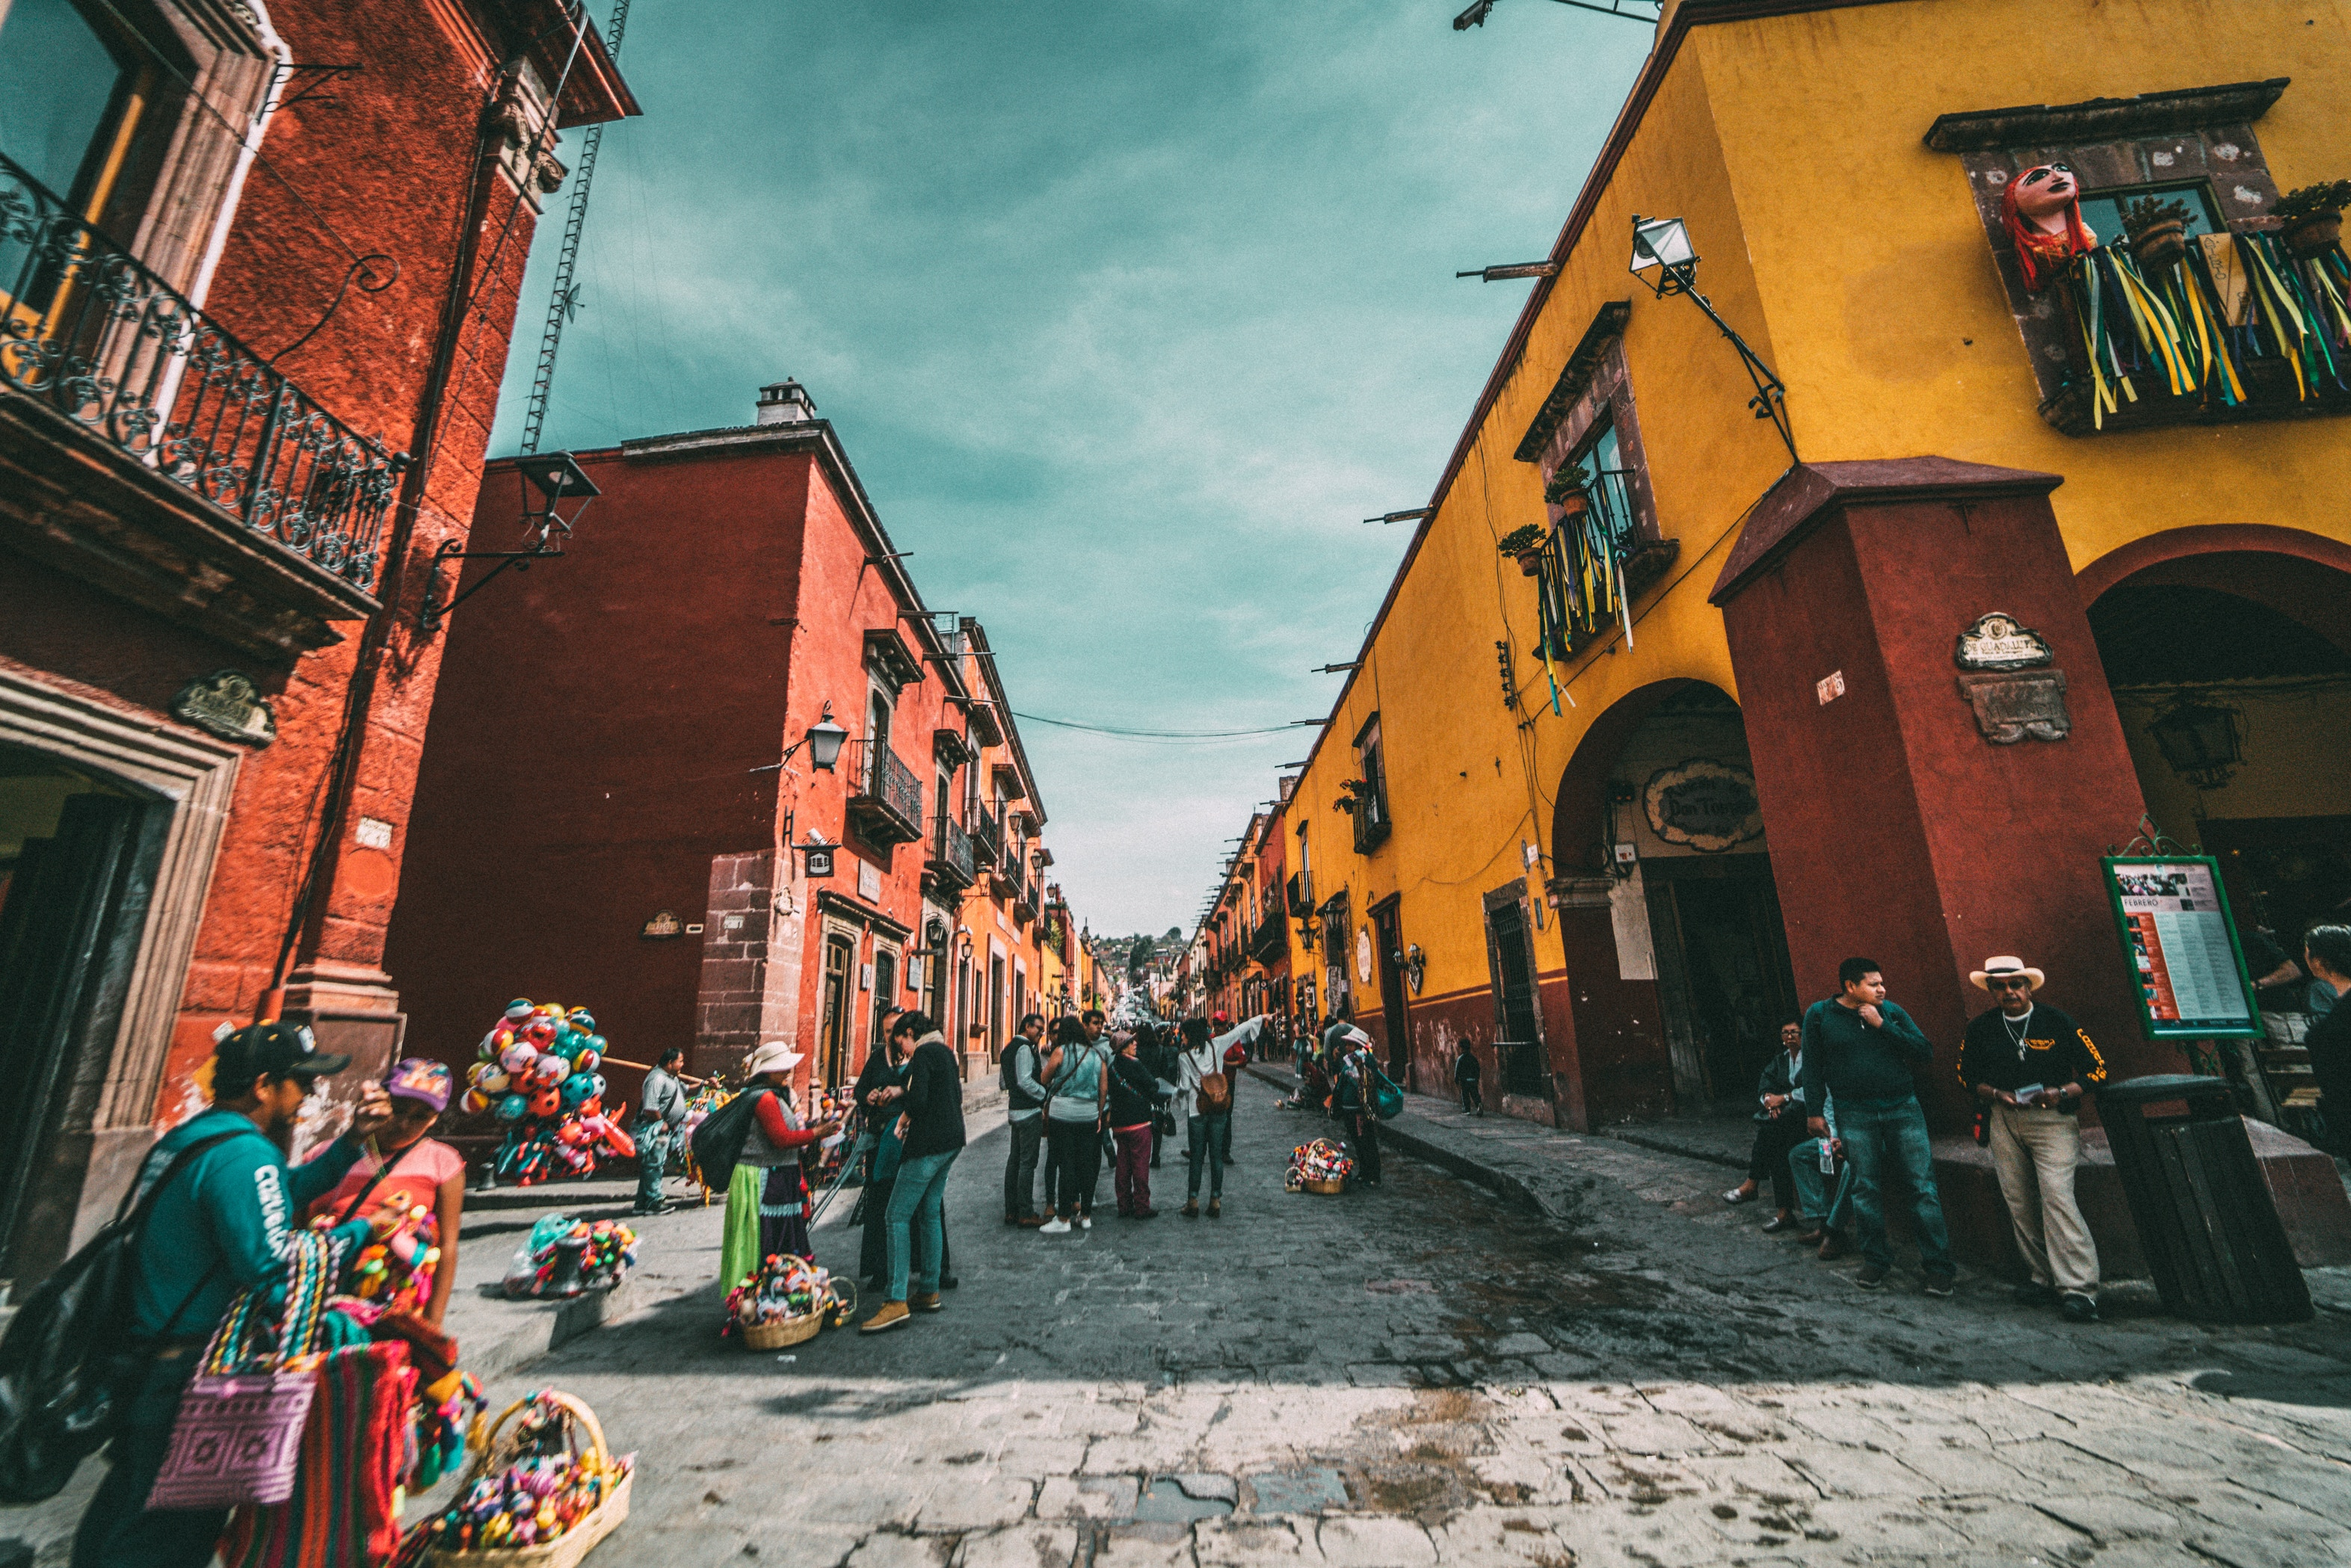 A photo of a street in Mexico